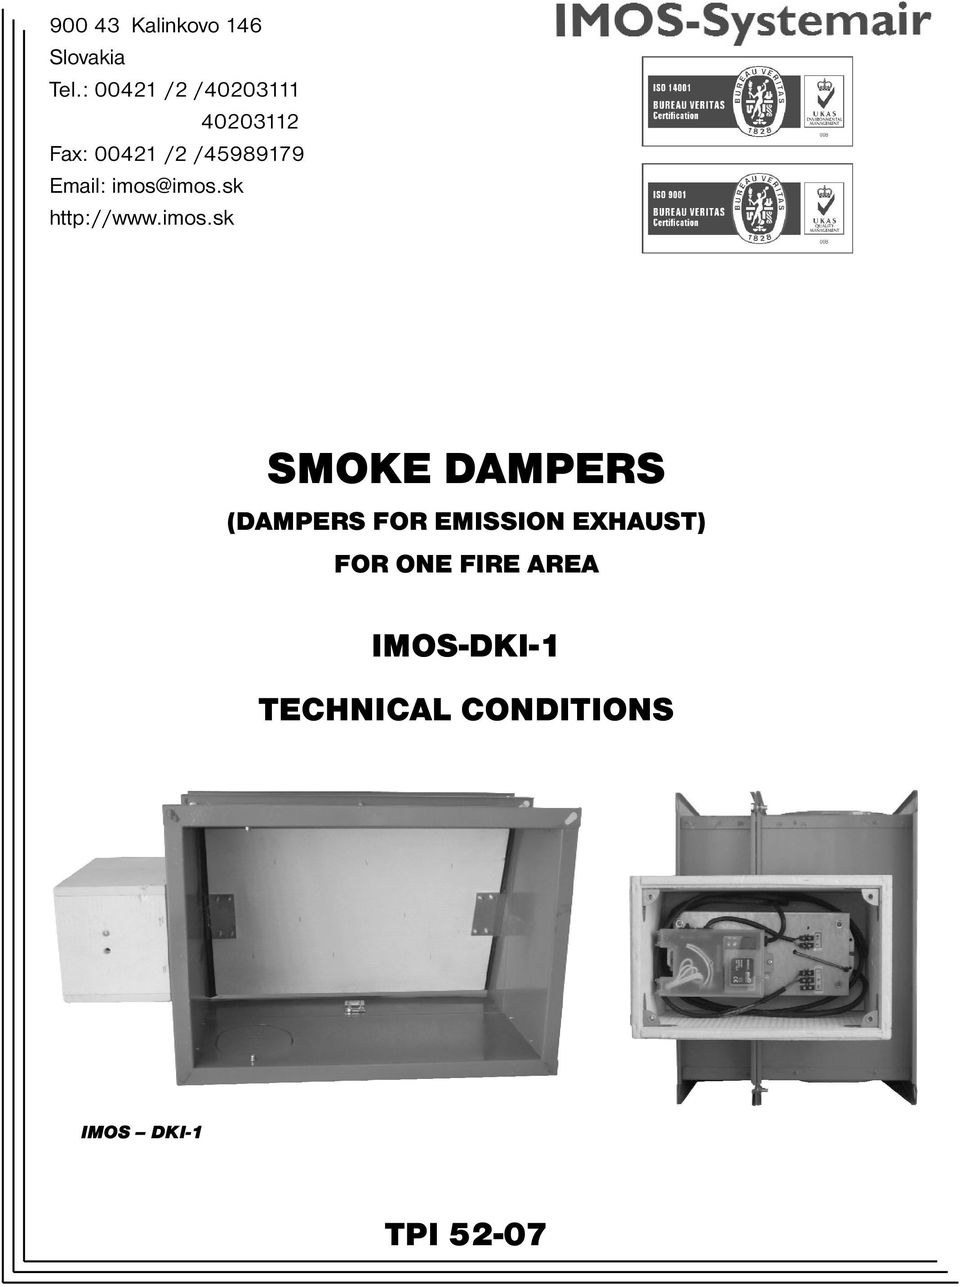 imos@imos.sk http://www.imos.sk SMOKE DAMPERS (DAMPERS FOR